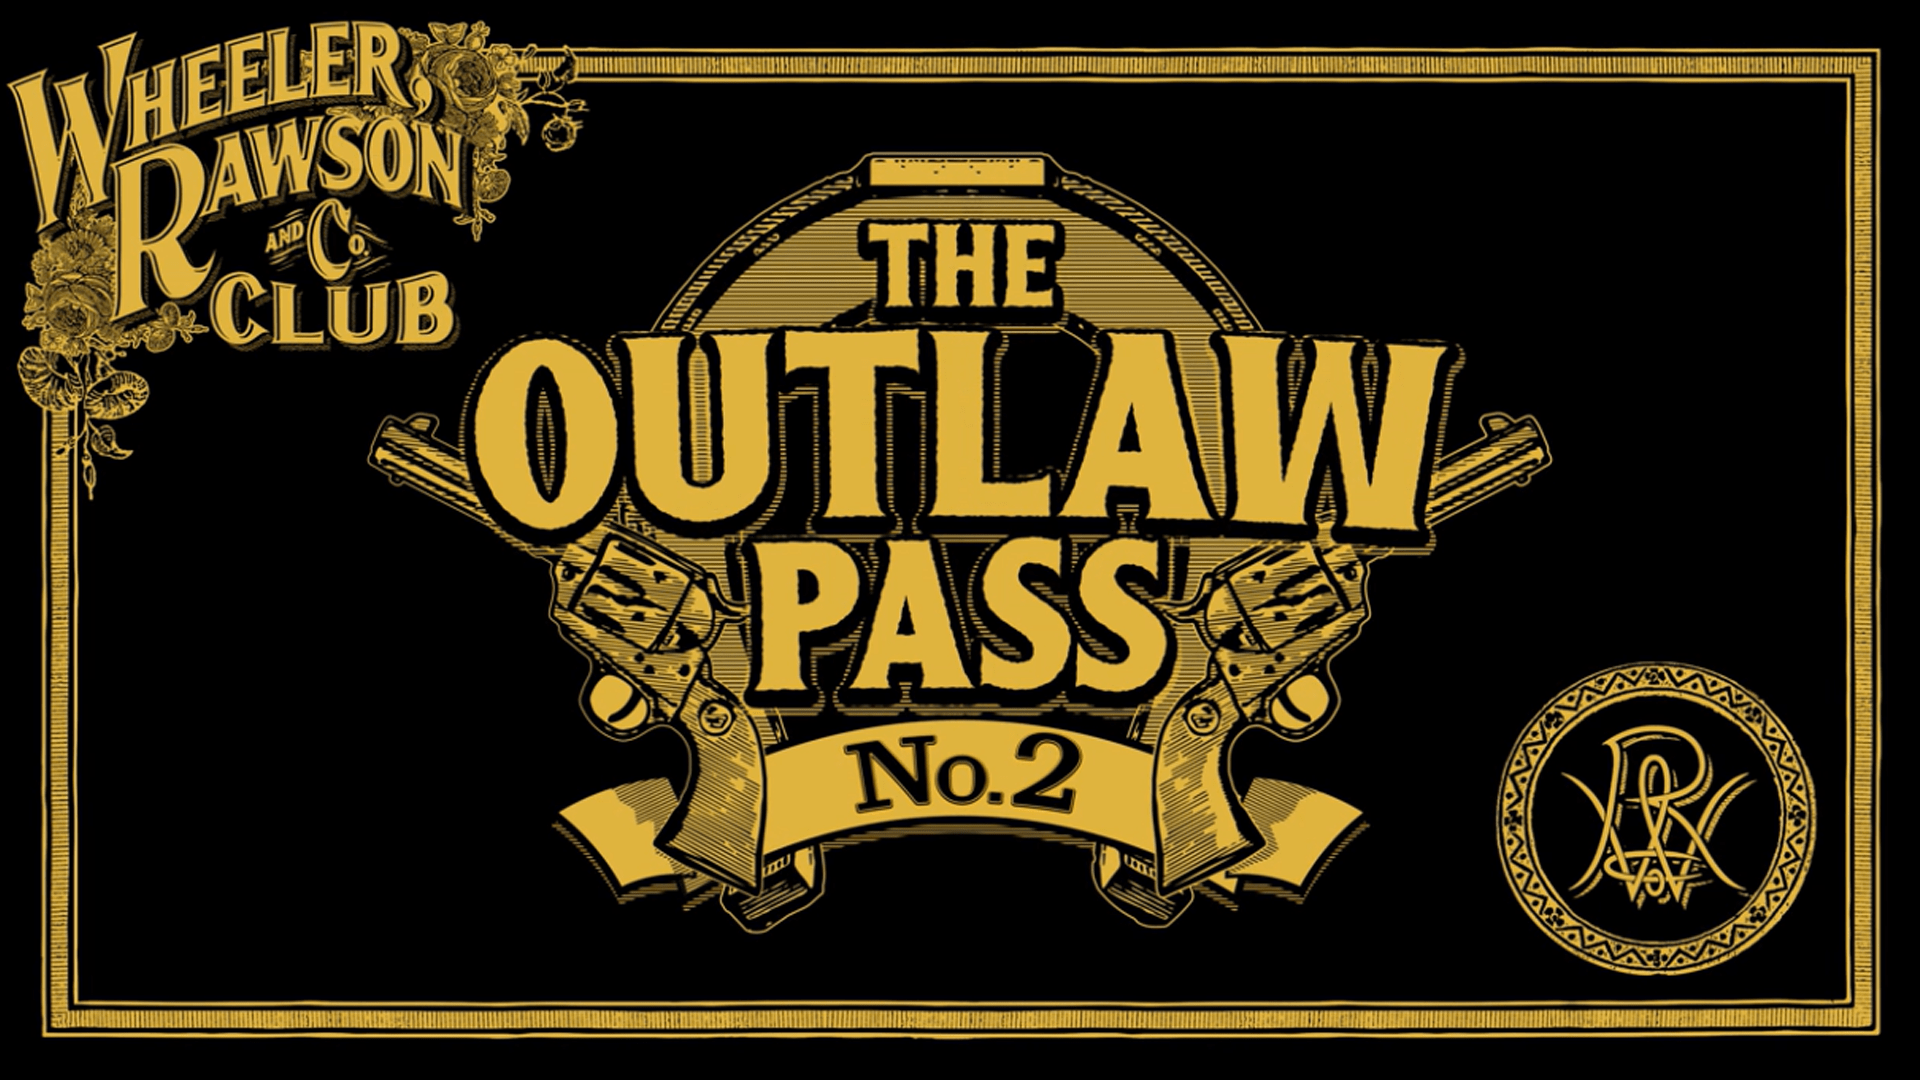 https://www.gtabase.com/images/red-dead-redemption-2/articles/red-dead-online-outlaw-pass-2.png